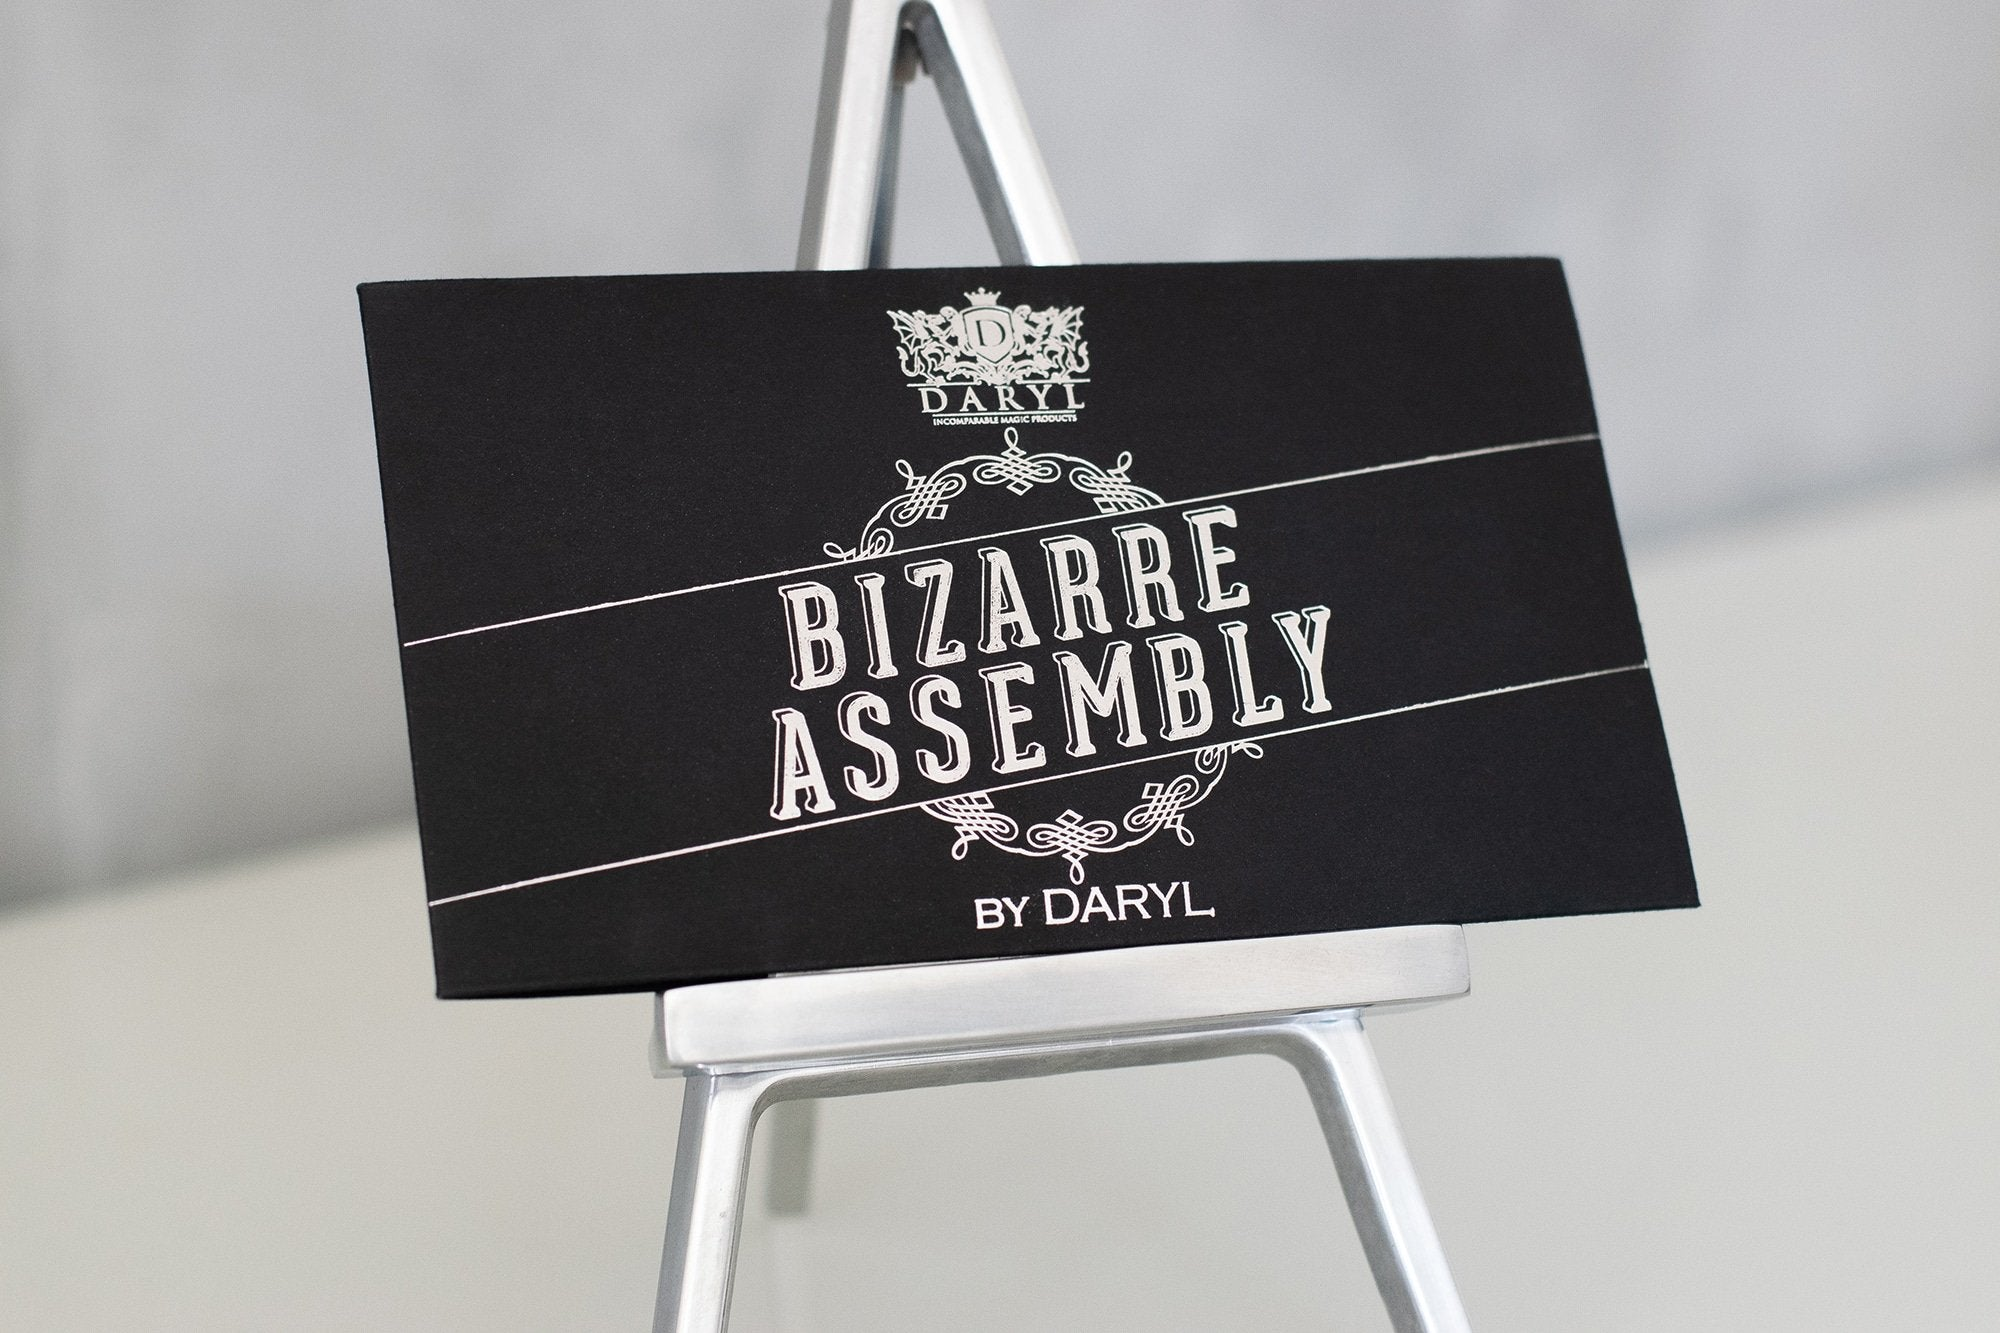 Bizarre Assembly by DARYL Galerie